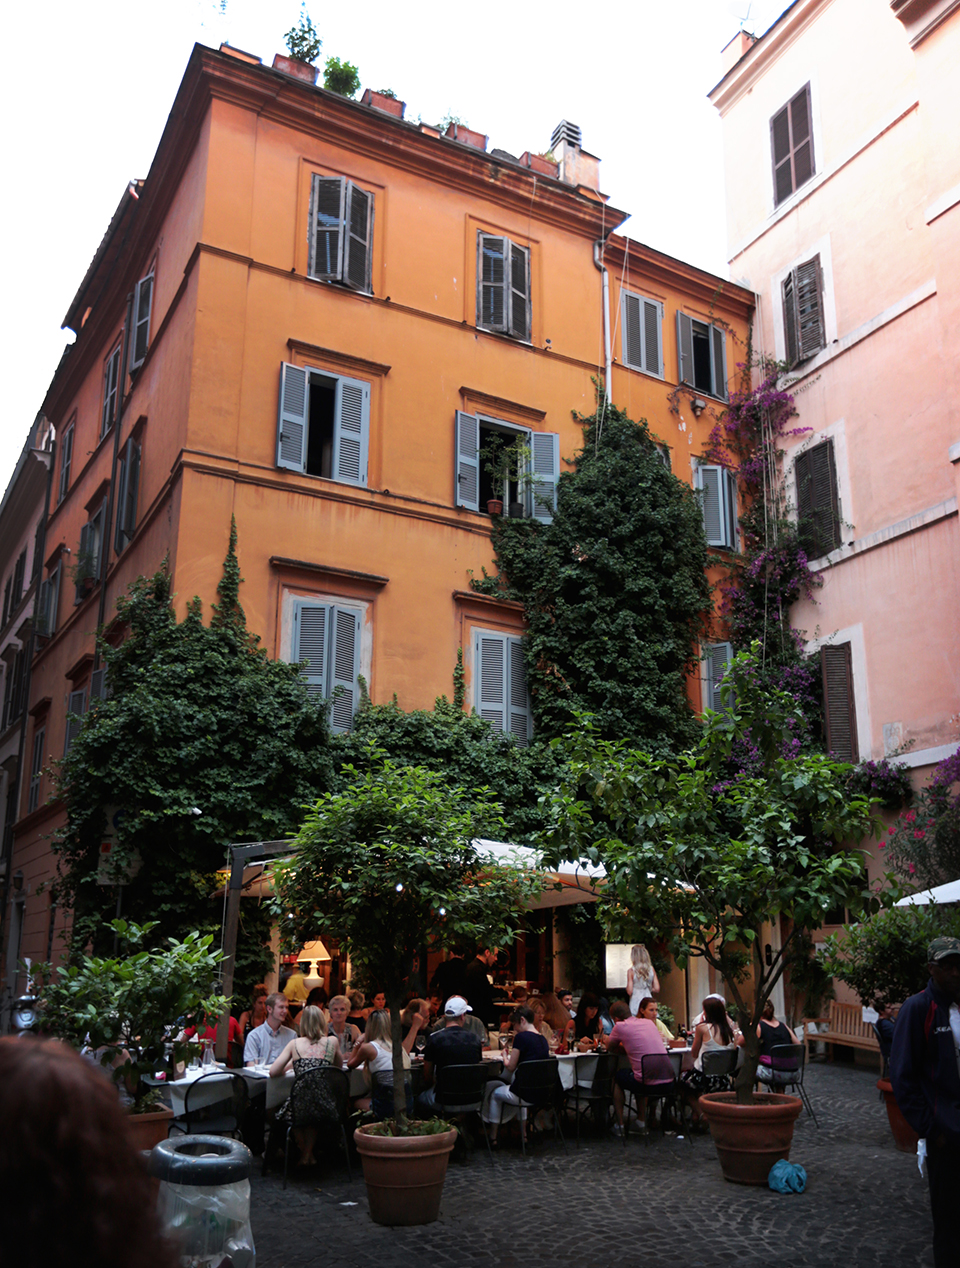 rome-italy-travel-blogger-amanda-custo-best-bloggers-johannesburg-south-africa-best-places-in-rome-007.jpg